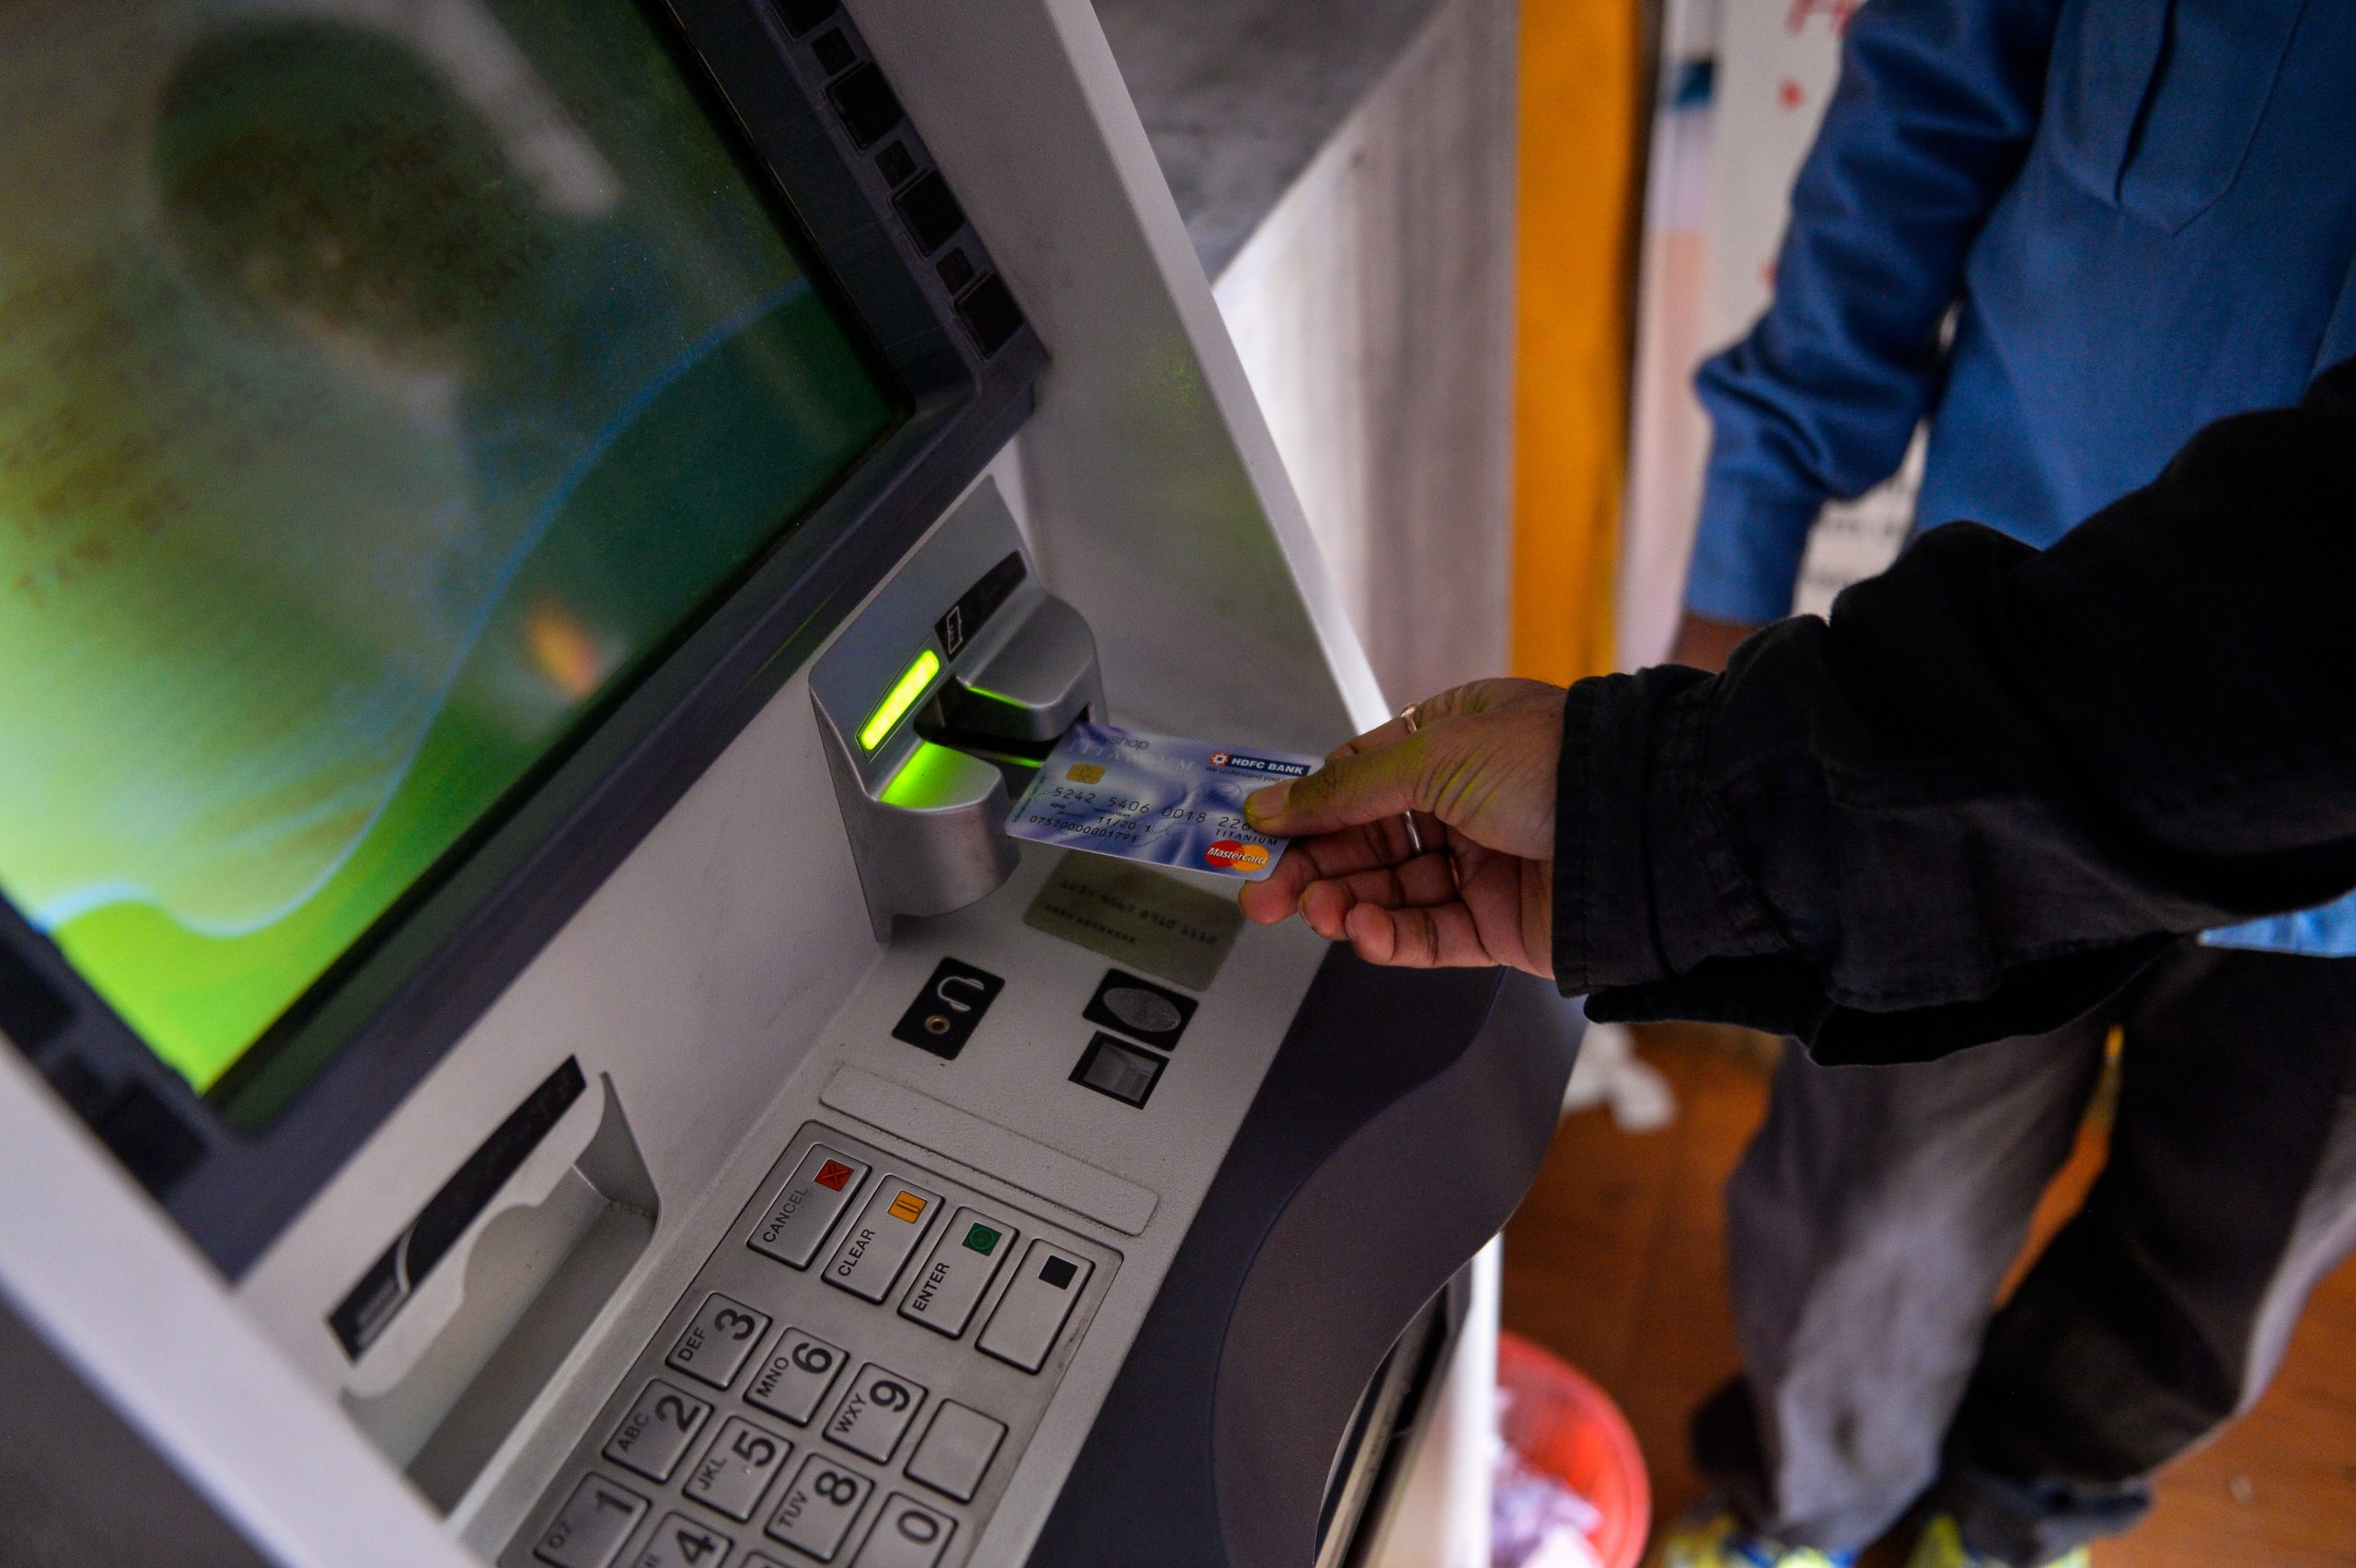 """An Indian man inserts his card to withdraw money from a mobile bank ATM machine in New Delhi on November 15, 2016. India is to use indelible ink to prevent people from exchanging old notes more than once, the government said, a week after the withdrawal of high-value banknotes from circulation in a crackdown on """"black money"""". / AFP PHOTO / CHANDAN KHANNA        (Photo credit should read CHANDAN KHANNA/AFP via Getty Images)"""